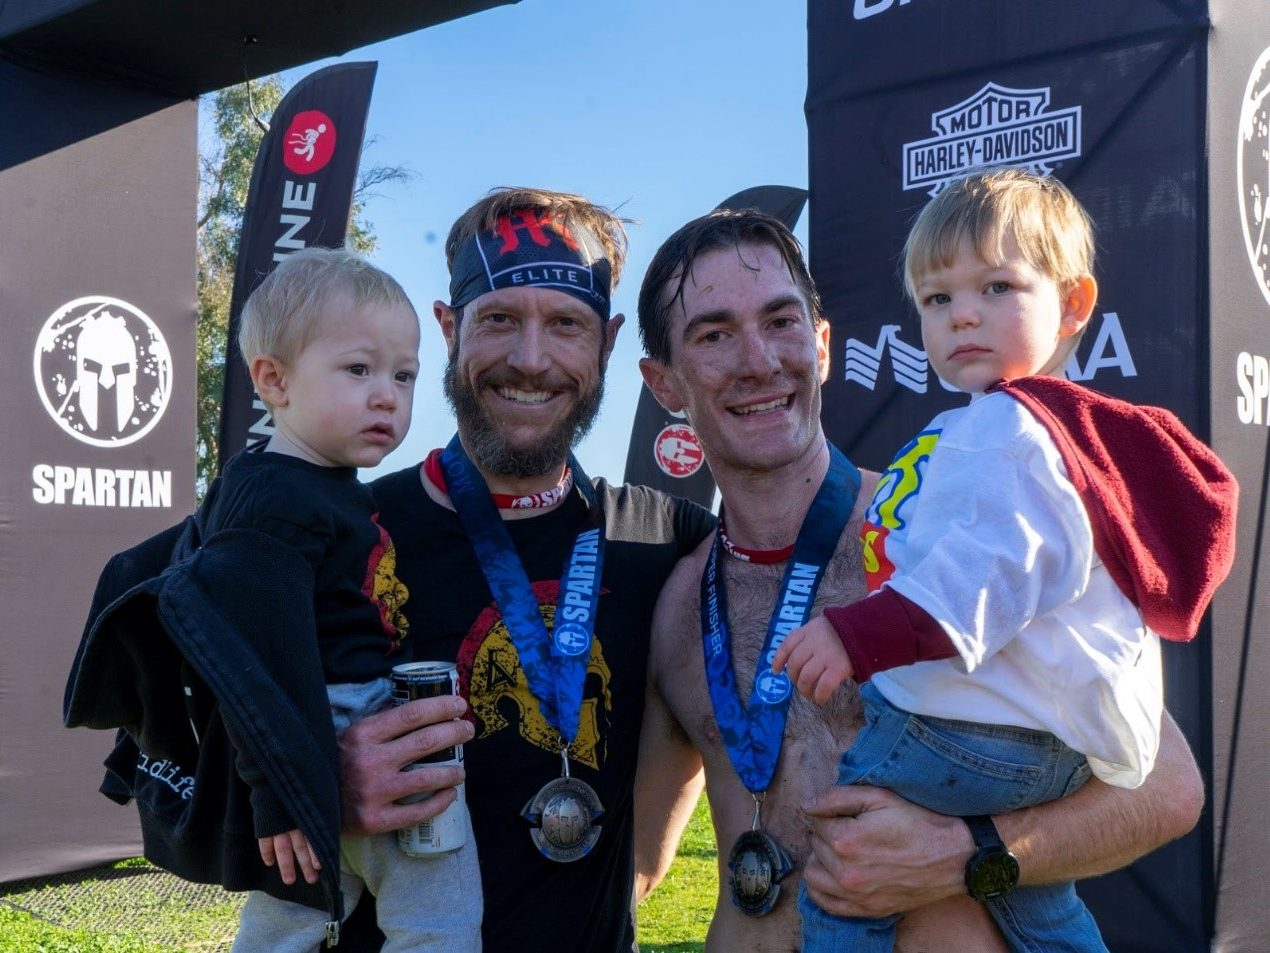 Photo of 2 Men each holding a child at the Spartan Event